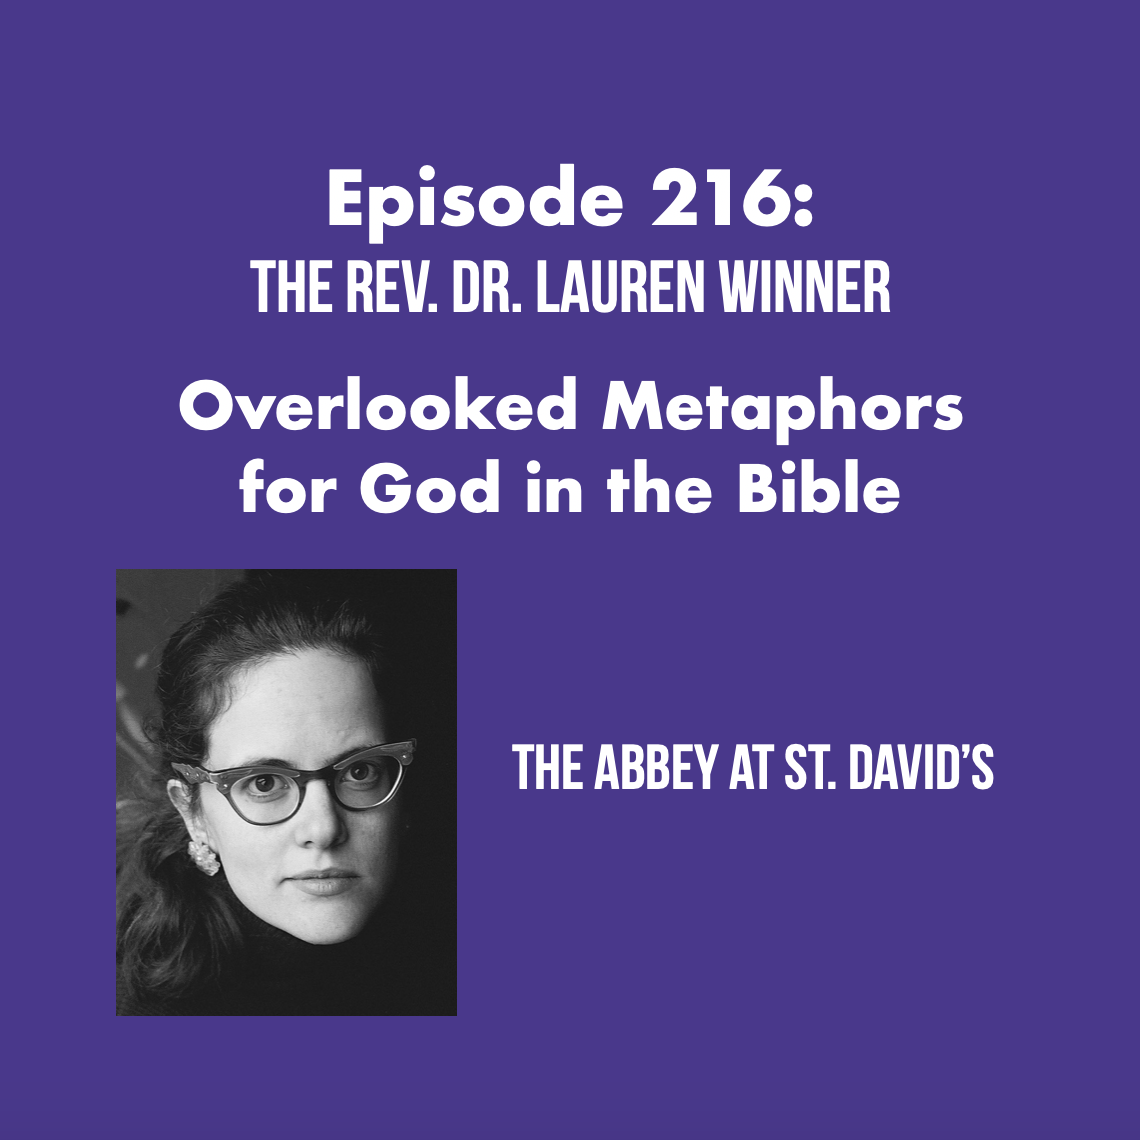 Episode 216: Overlooked Metaphors for God in the Bible with The Rev. Dr. Lauren Winner